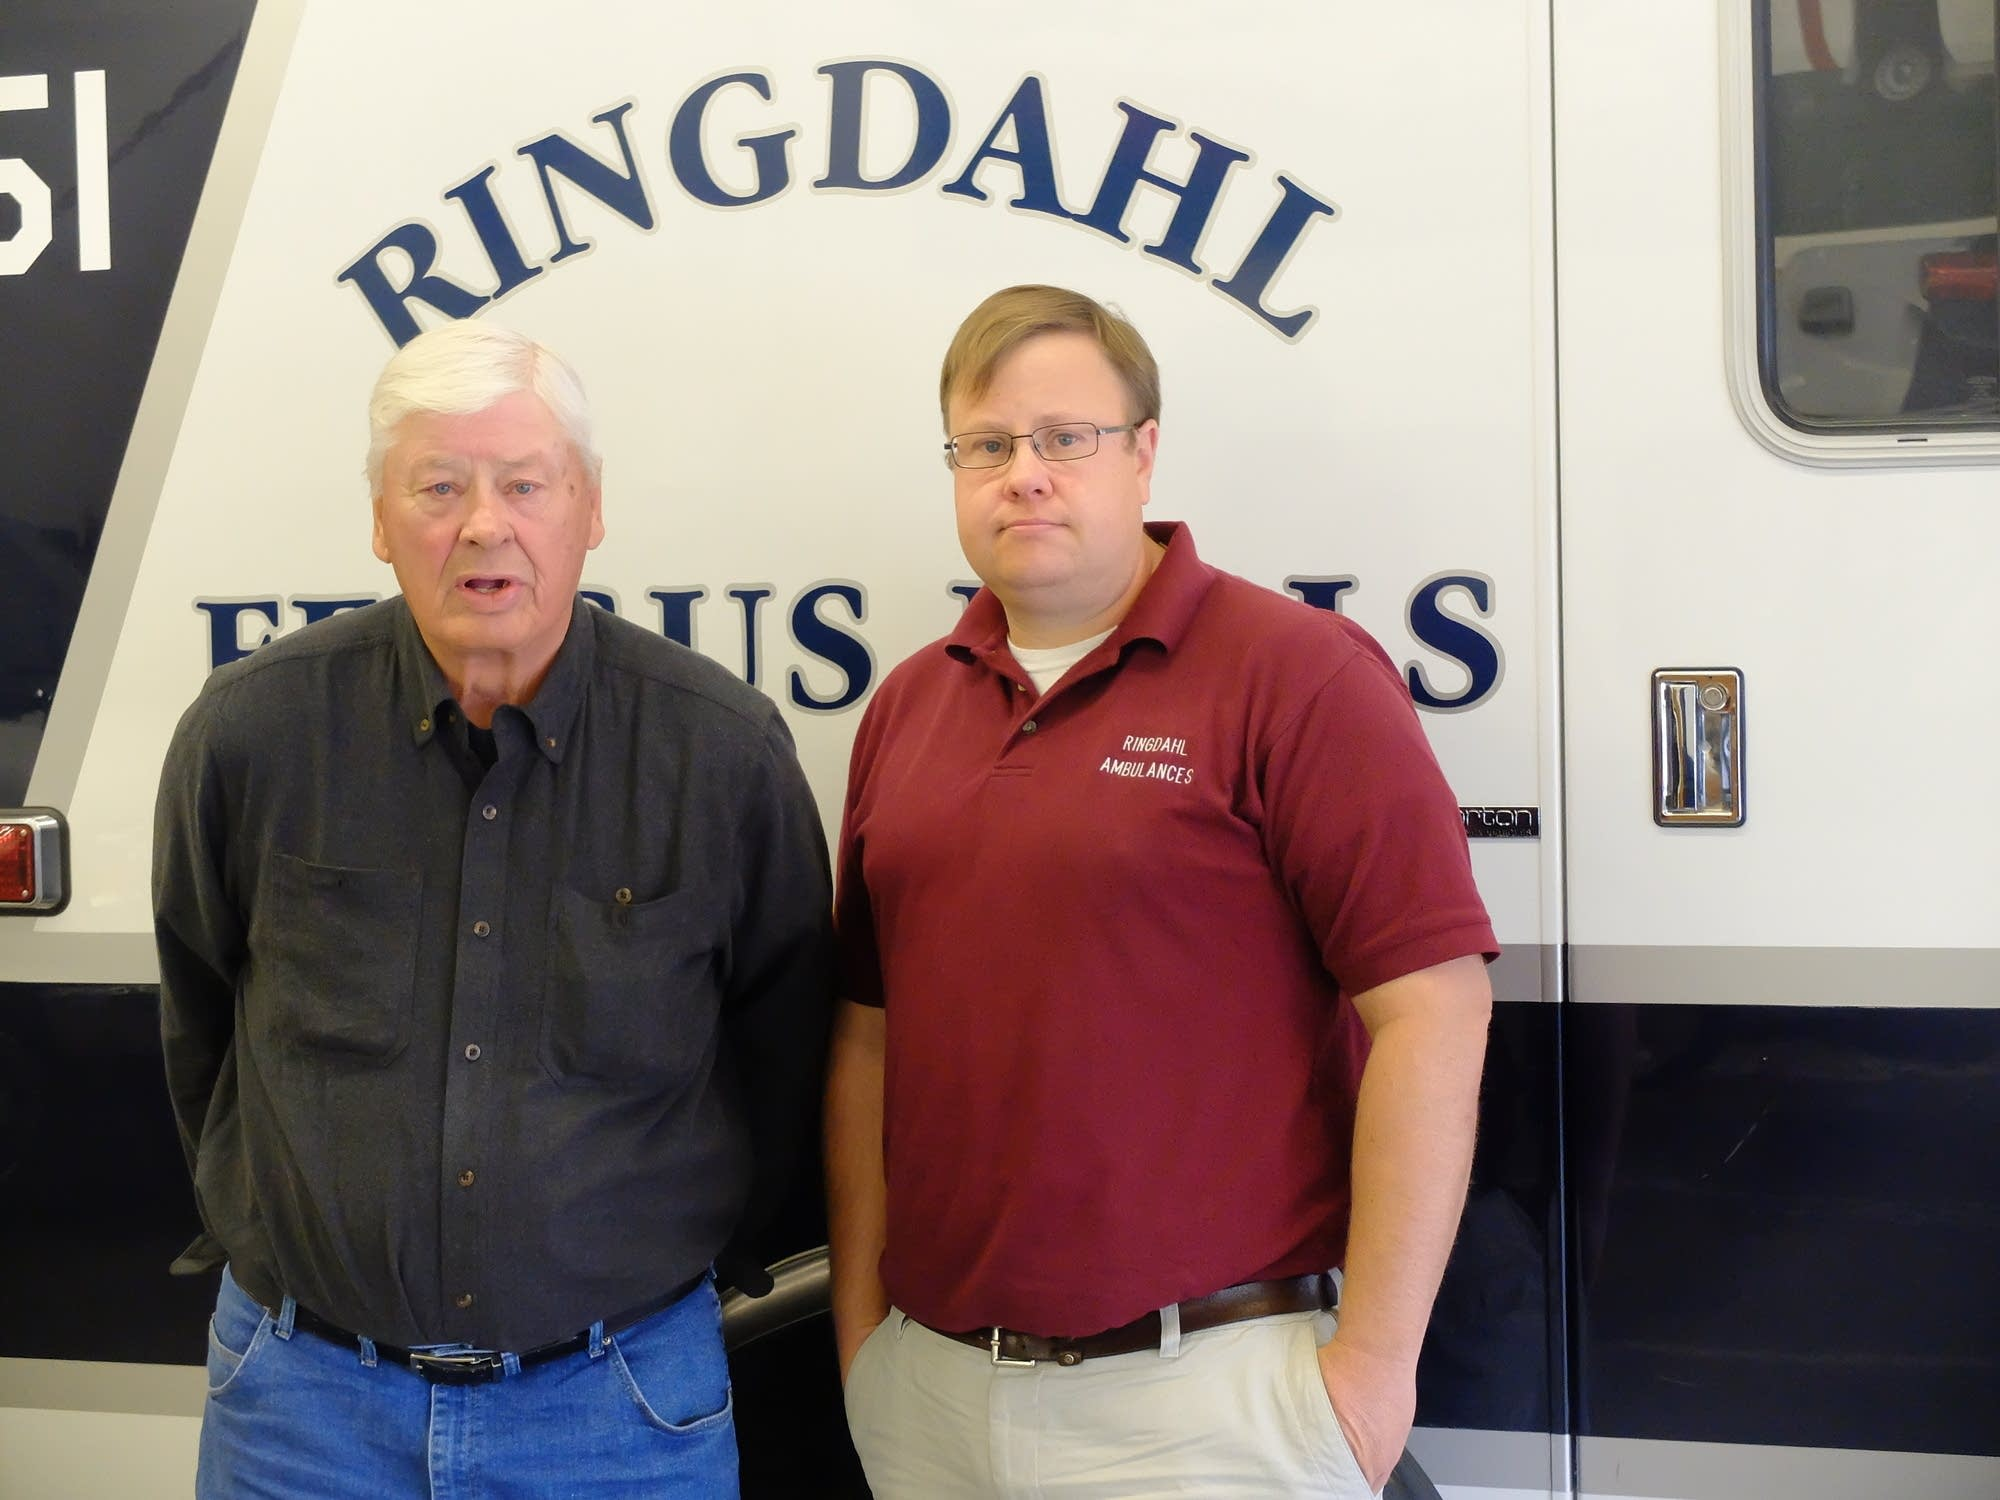 John Ringdahl and his son Tollef pose next to one of their ambulances.